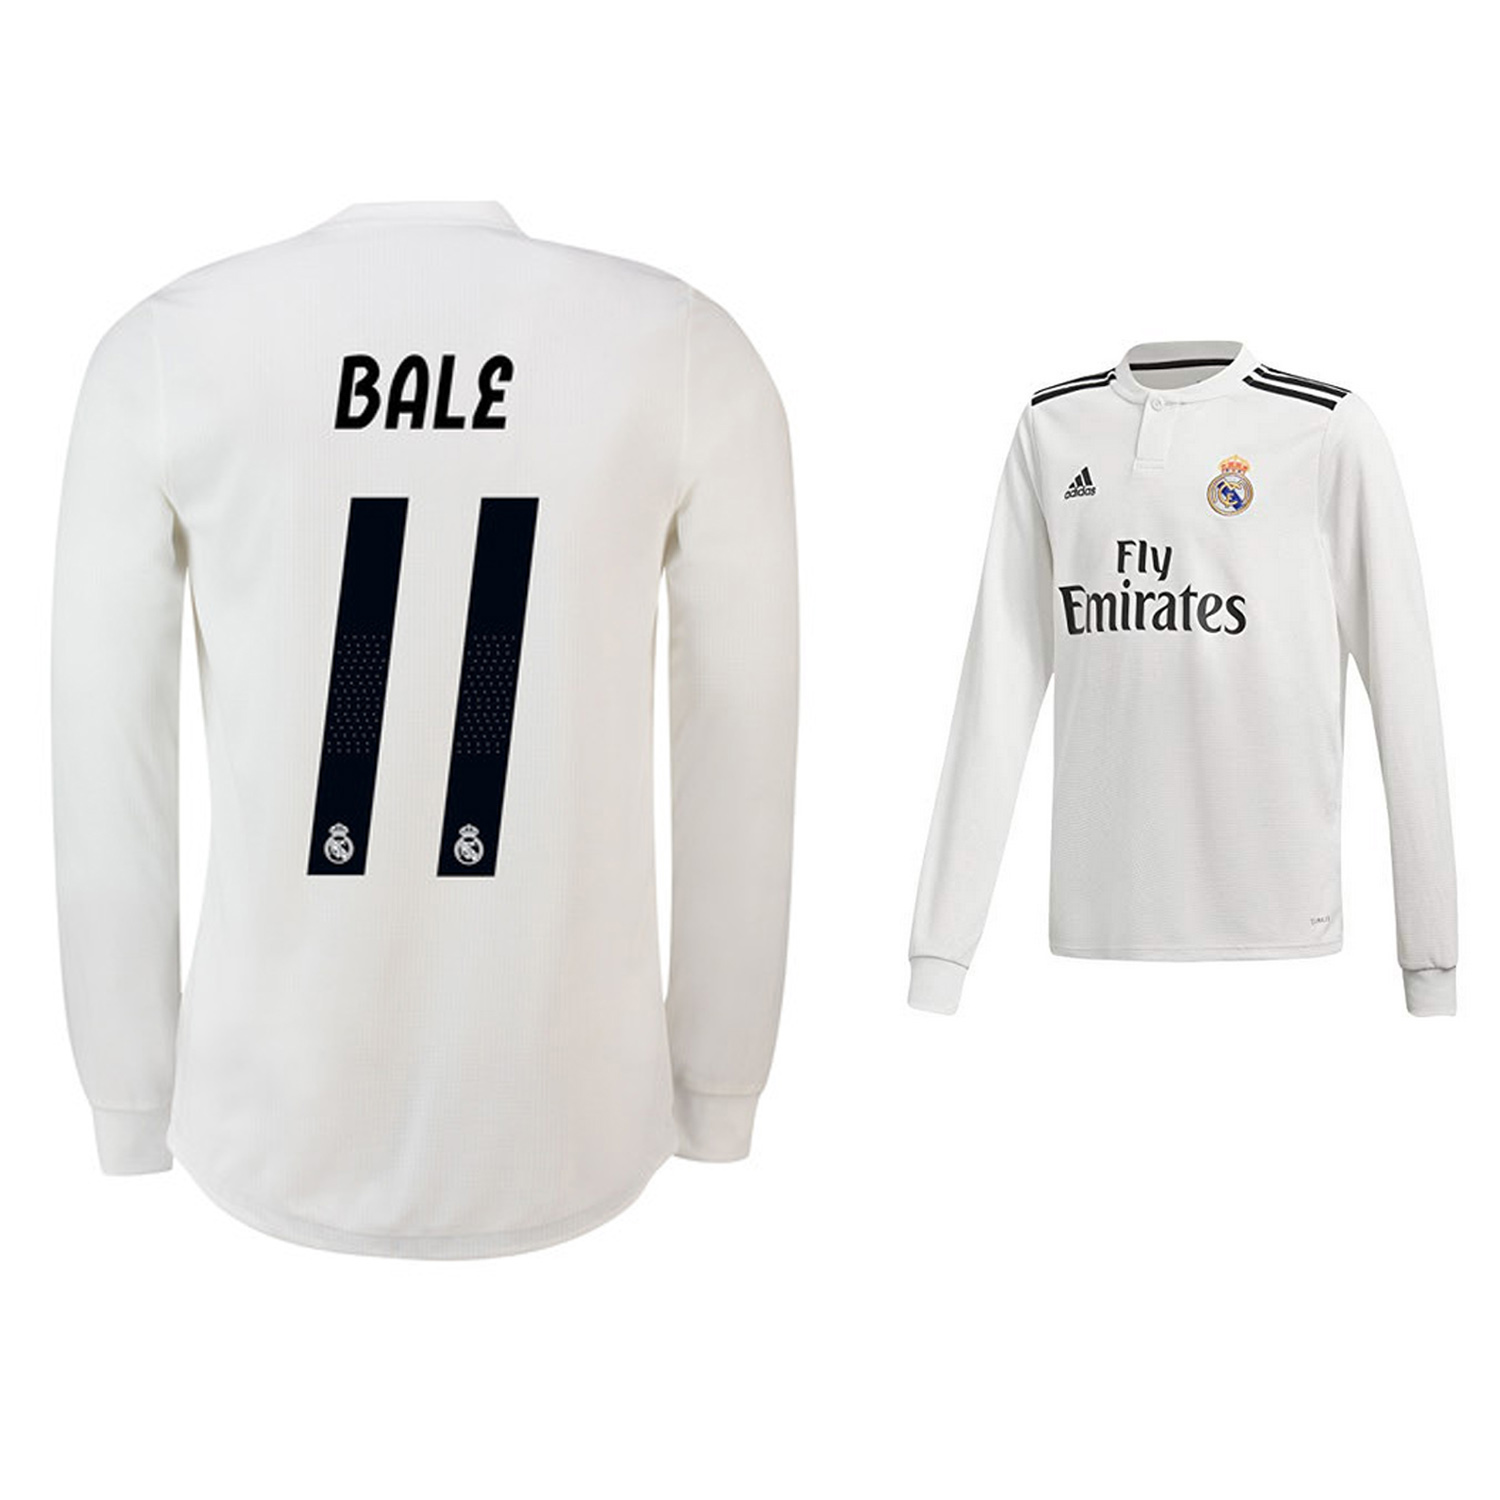 3e88f1076 adidas Youth Real Madrid Bale  11 Long Sleeve Jersey (Home 18 19 ...